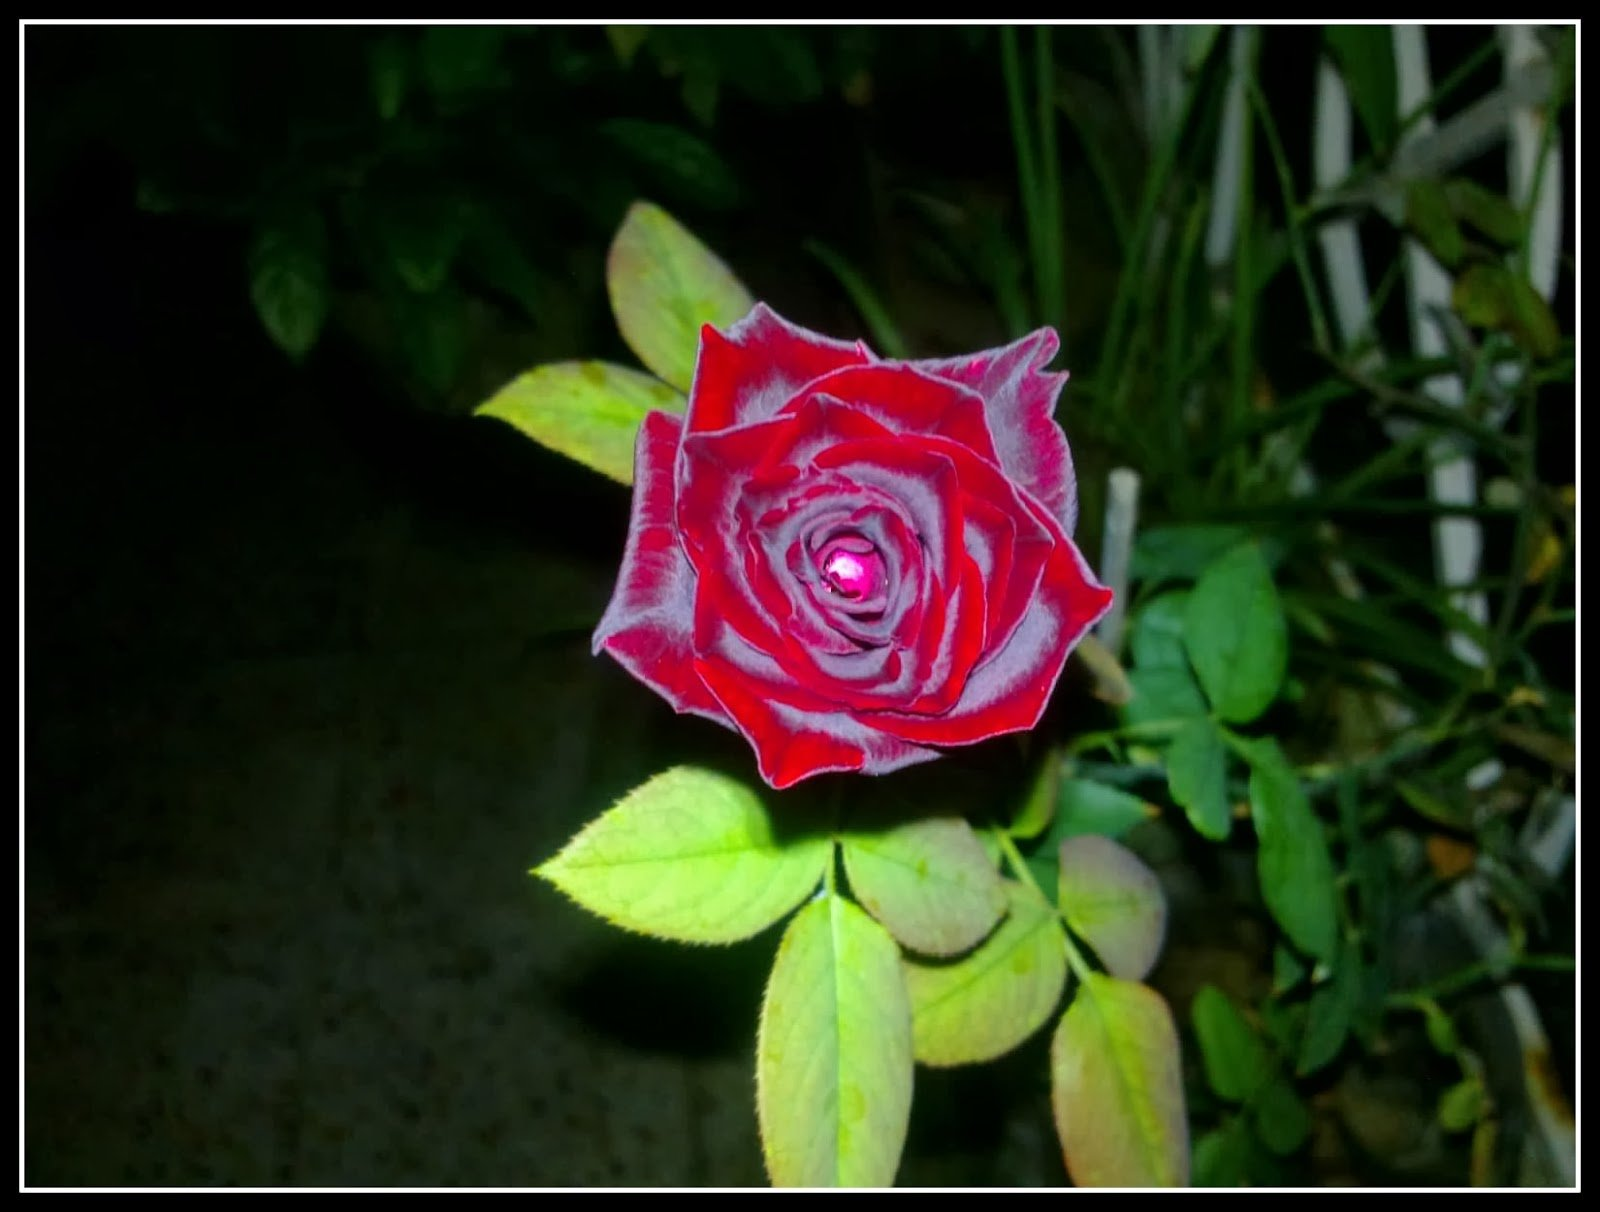 The Velvette Rose by Mousumi De on Visioplanet Photography